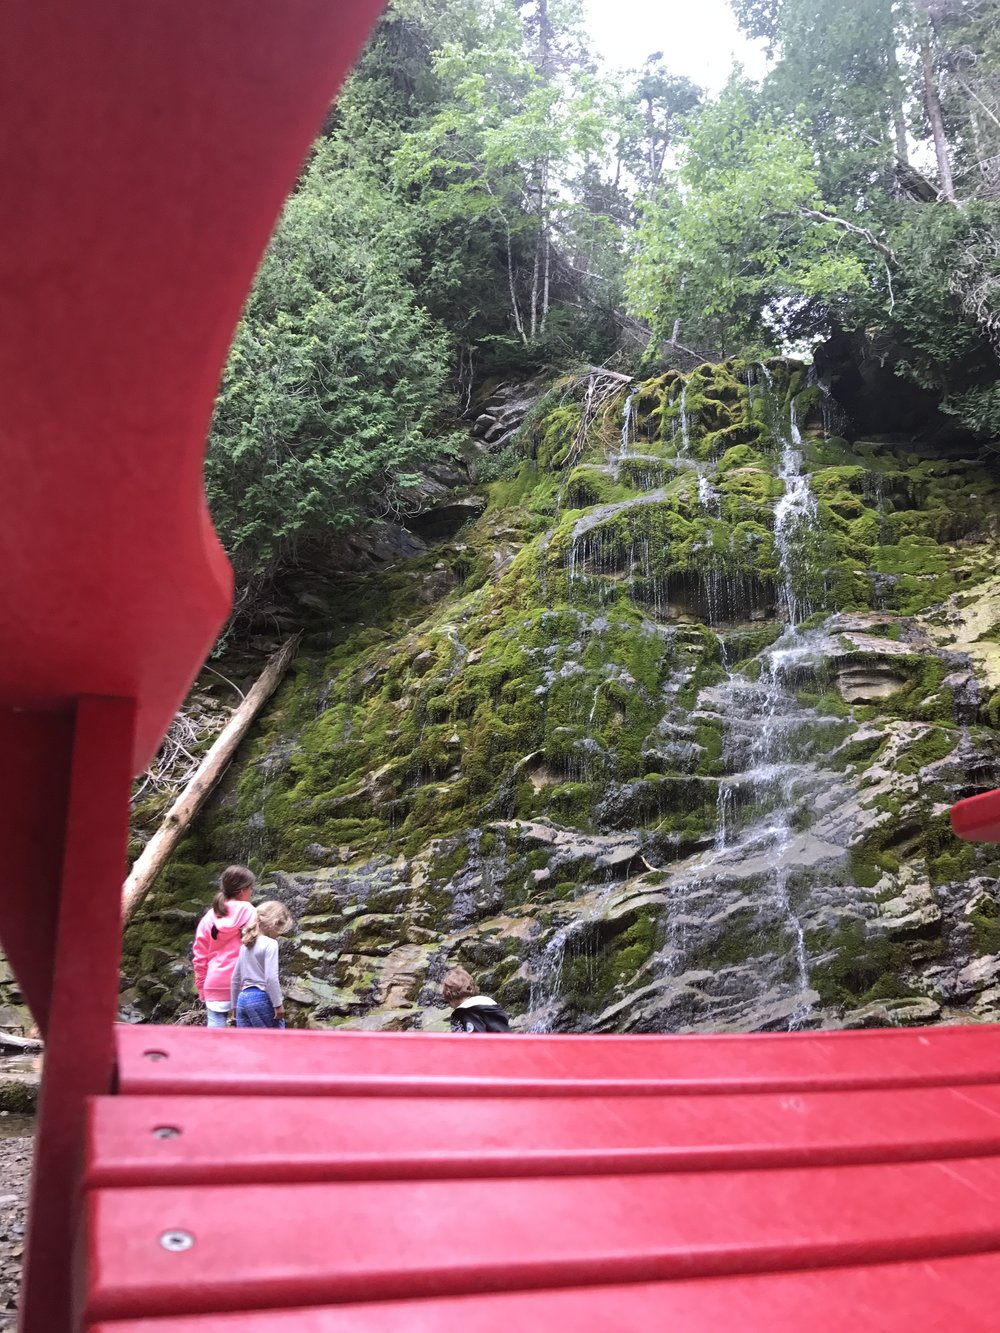 #sharethechair on the Chute (Waterfall) Trail.